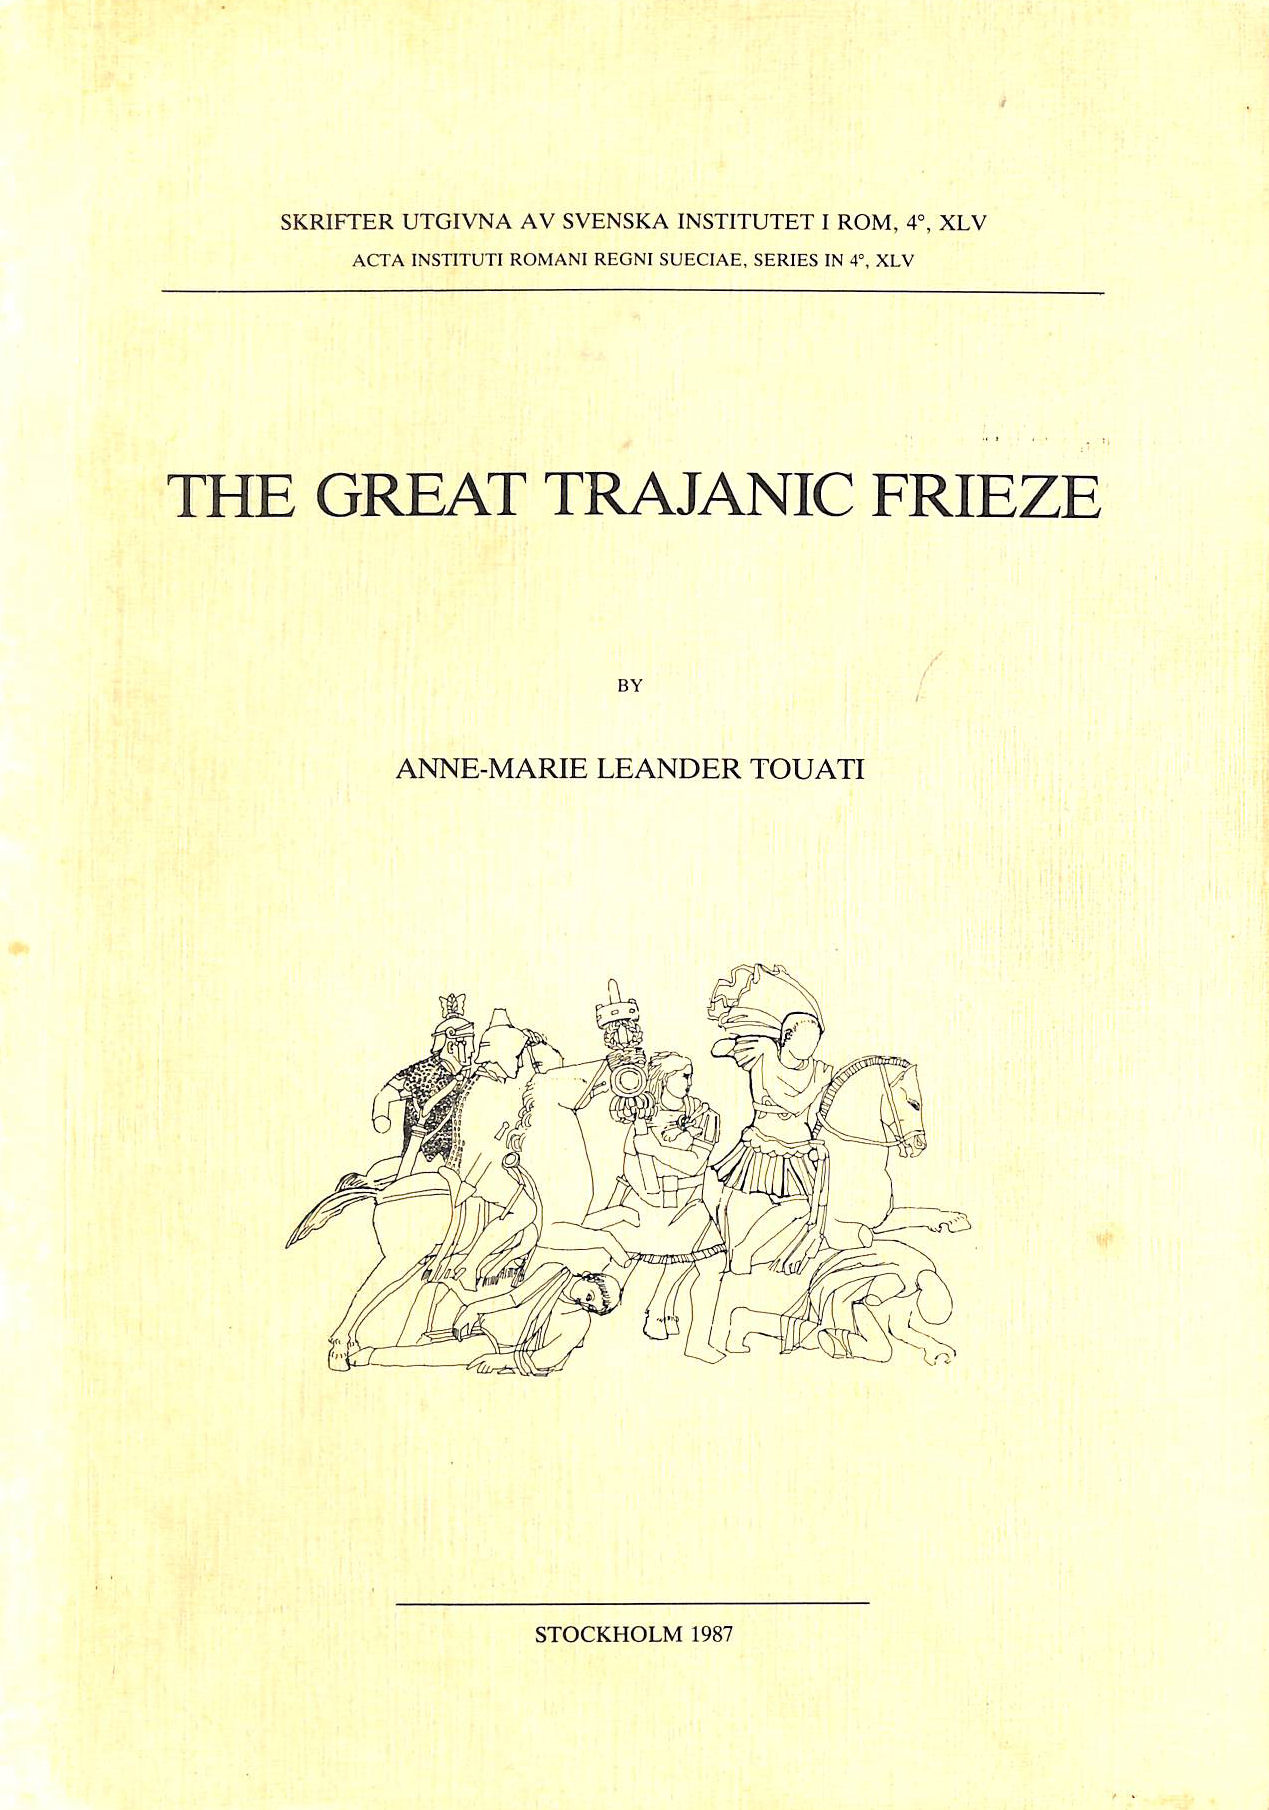 Image for The Great Trajanic Frieze: The Study Of A Monument And Of The Mechanisms Of Message Transmission In Roman Art (Skrifter Utgivna Av Svenska Institutet I Rom. Series In 4À)